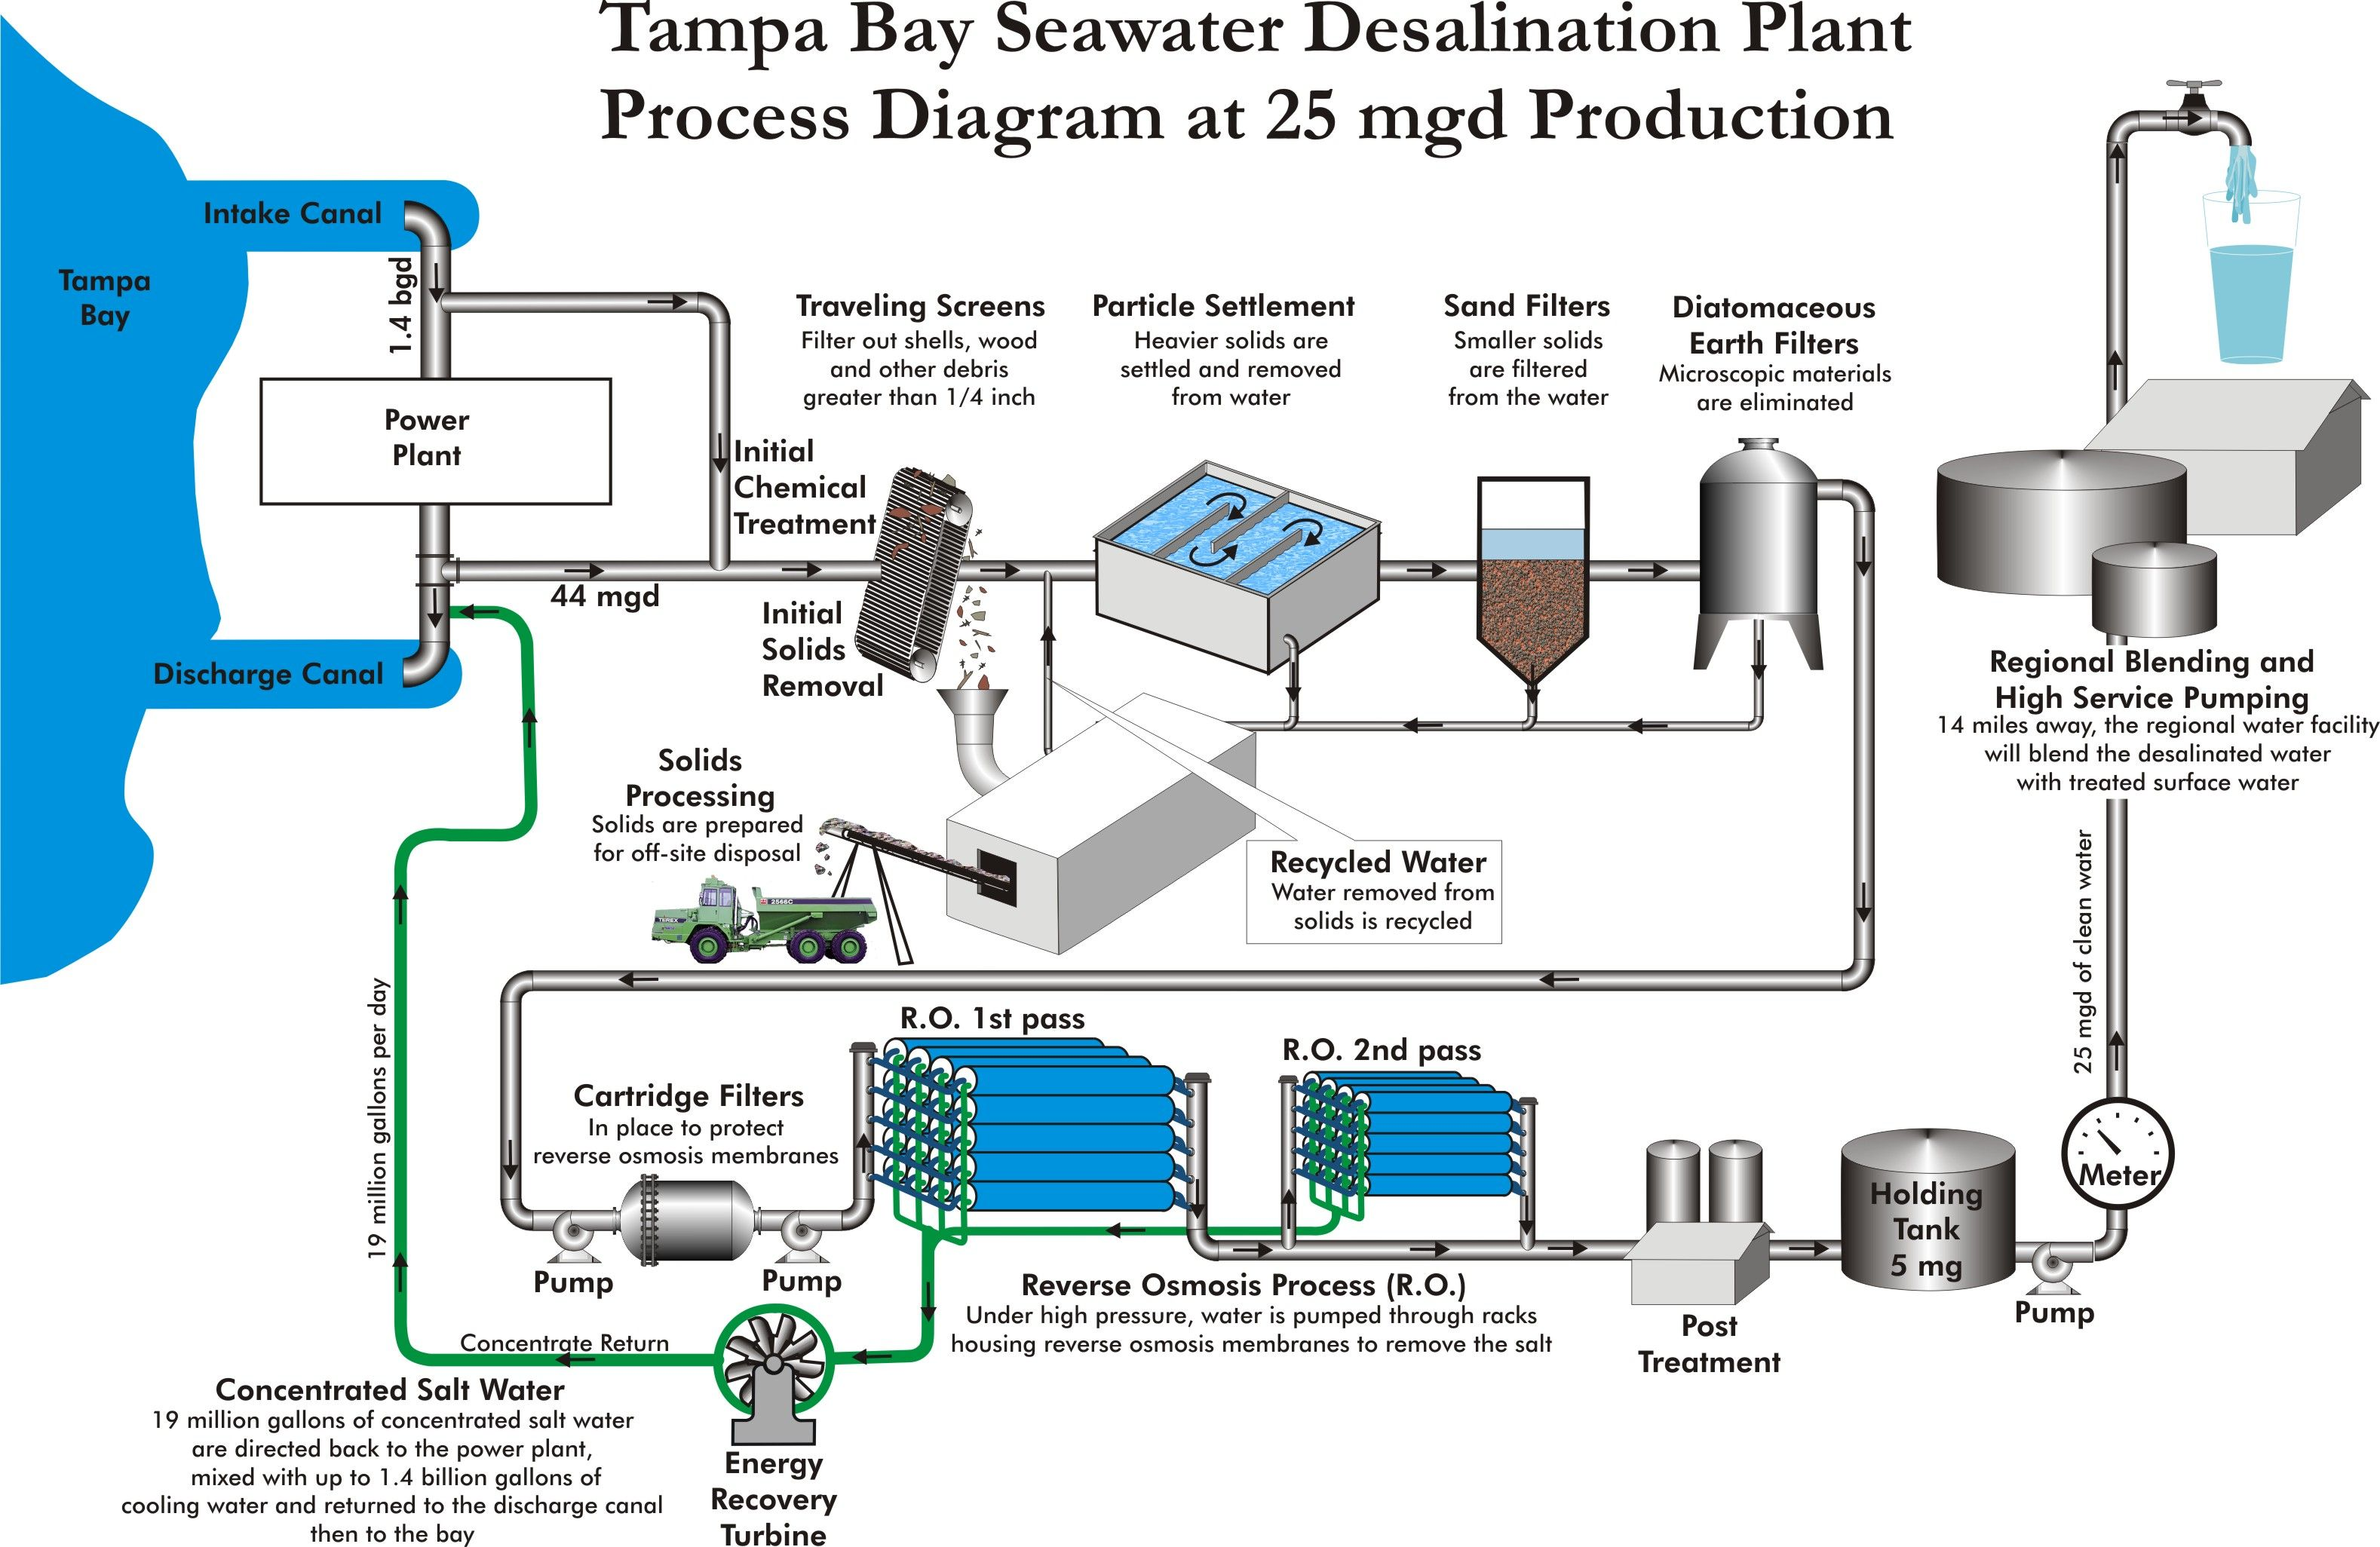 Tampa Bay Seawater Desalination Plant Flow Diagram.